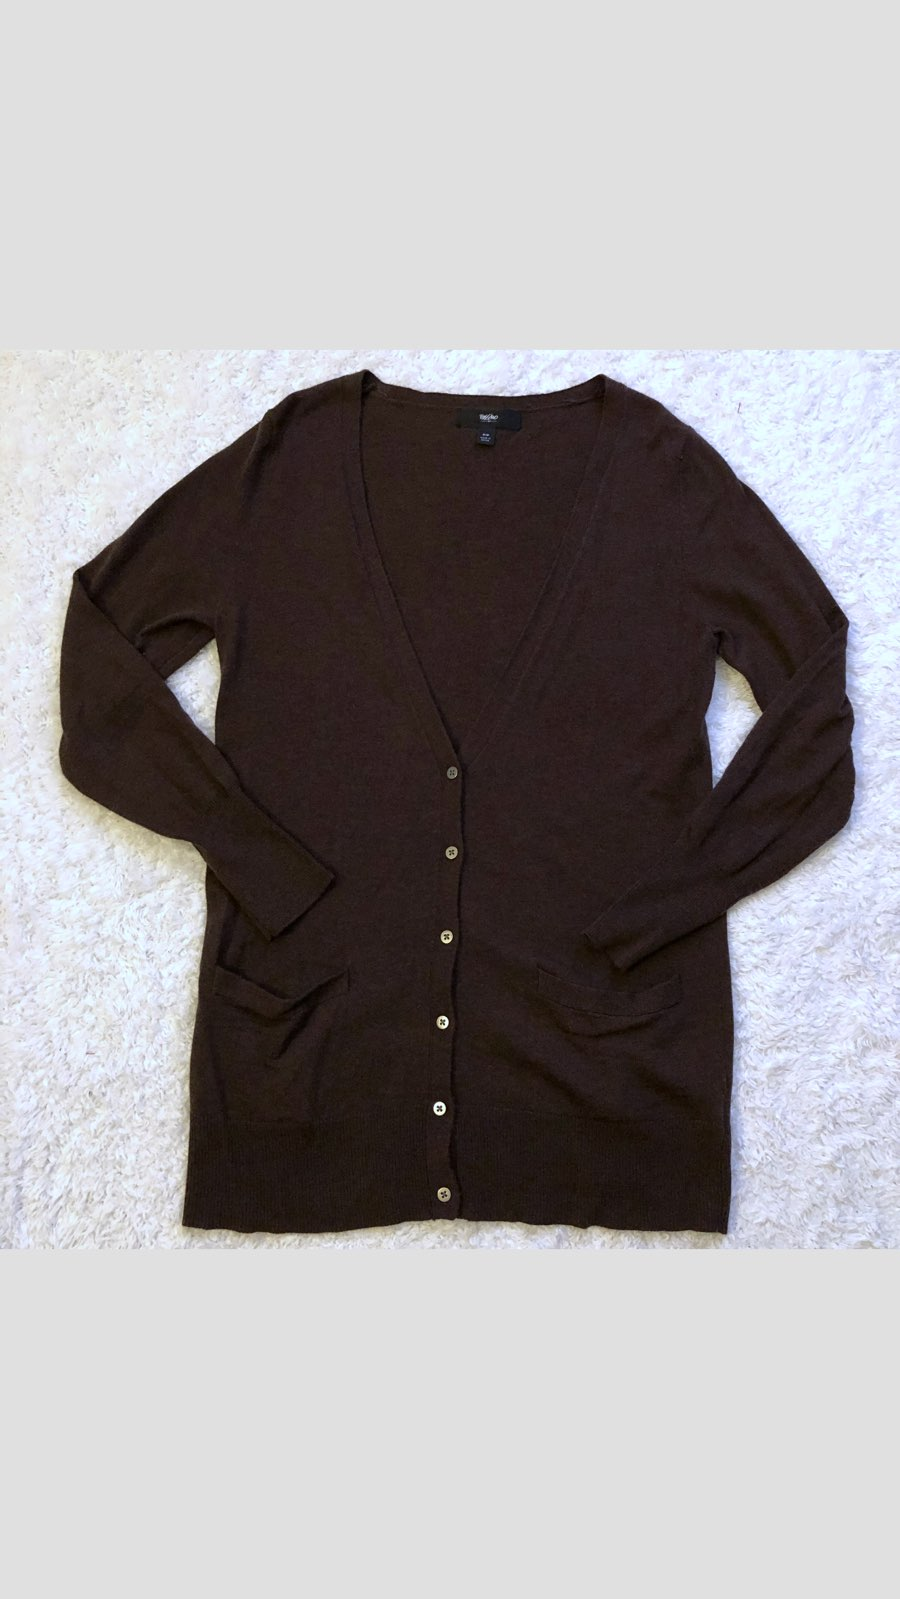 Mossimo Dark Brown Long Cardigan - Mercari: BUY & SELL THINGS YOU LOVE